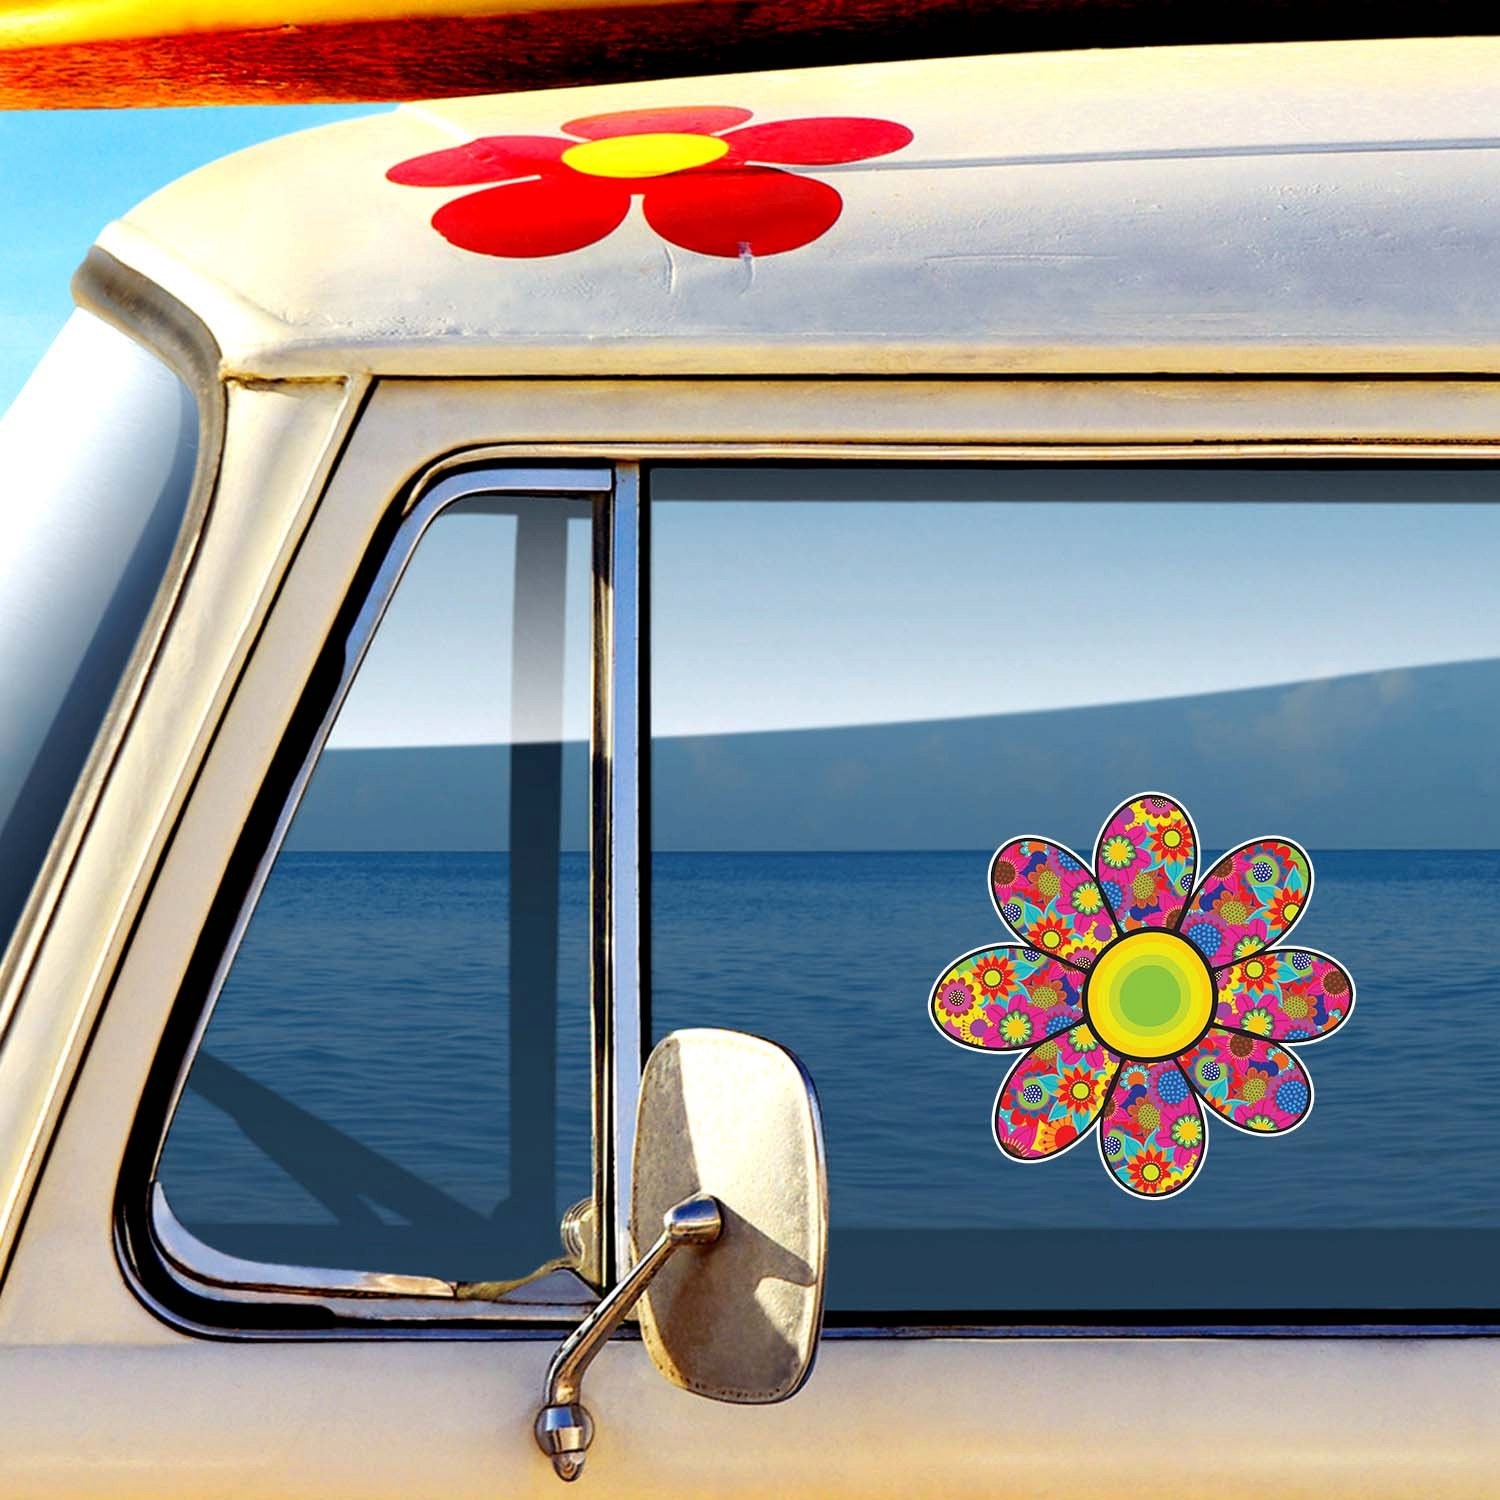 Flower Car Decal Cute Daisy Colorful Floral Bumper Sticker